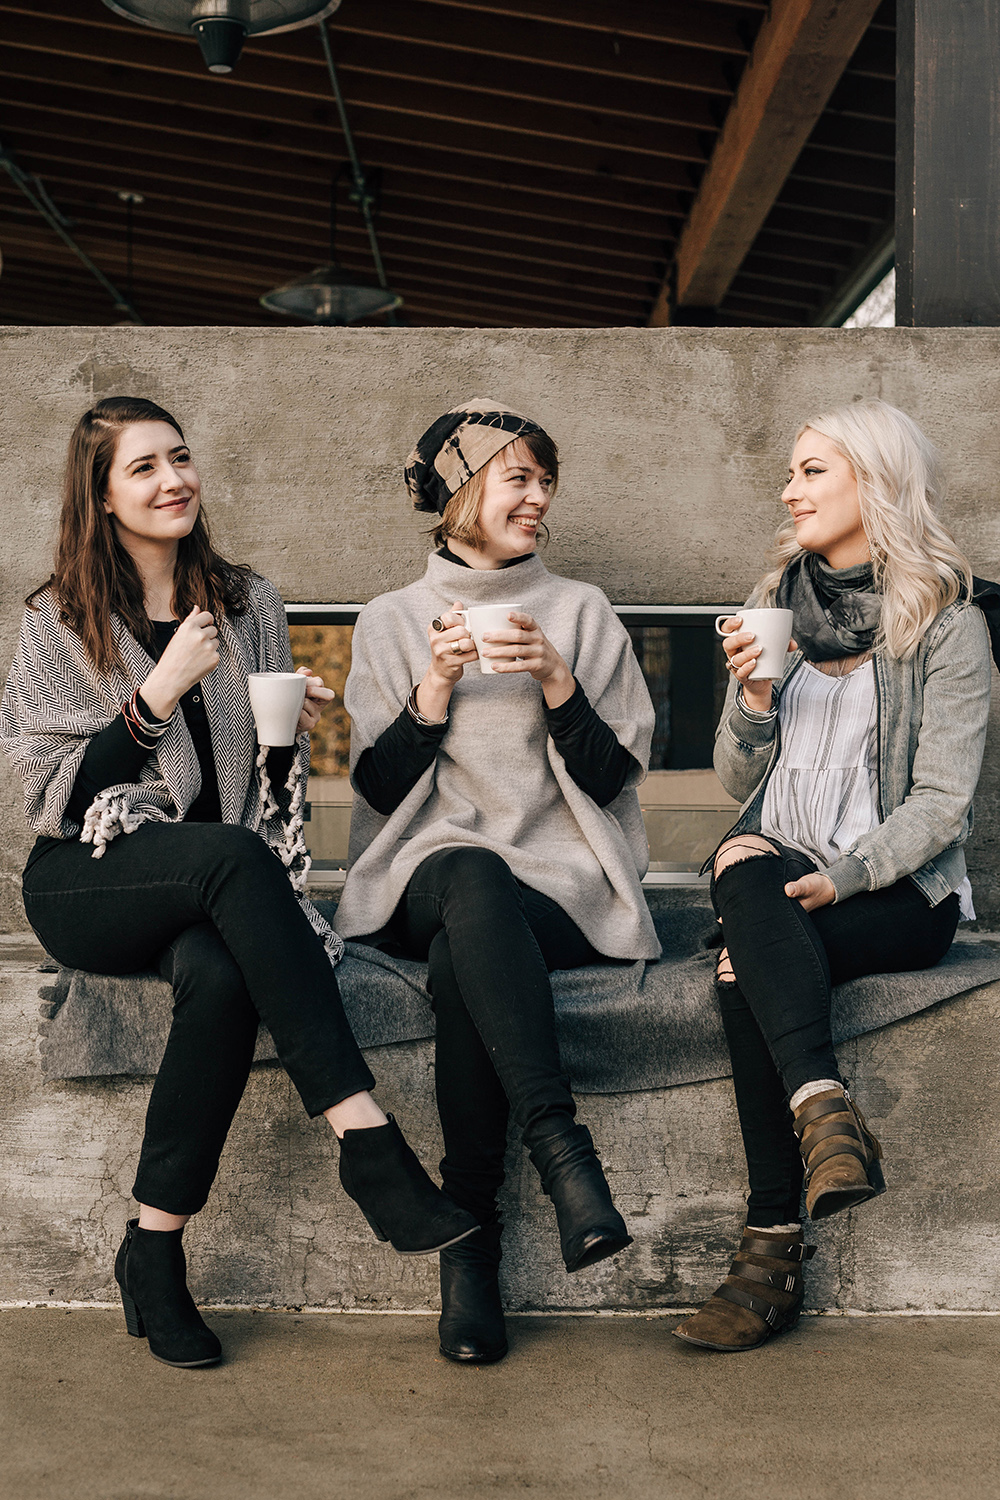 The Lodges on Vashon - Julia Amodt of @styleandcheek, Esther Swaty of @uncommoncartography, and Lana Dmitruks of @lanadmitruks The Pavilion fireplace photo by Danny Owens - The Lodges on Vashon review